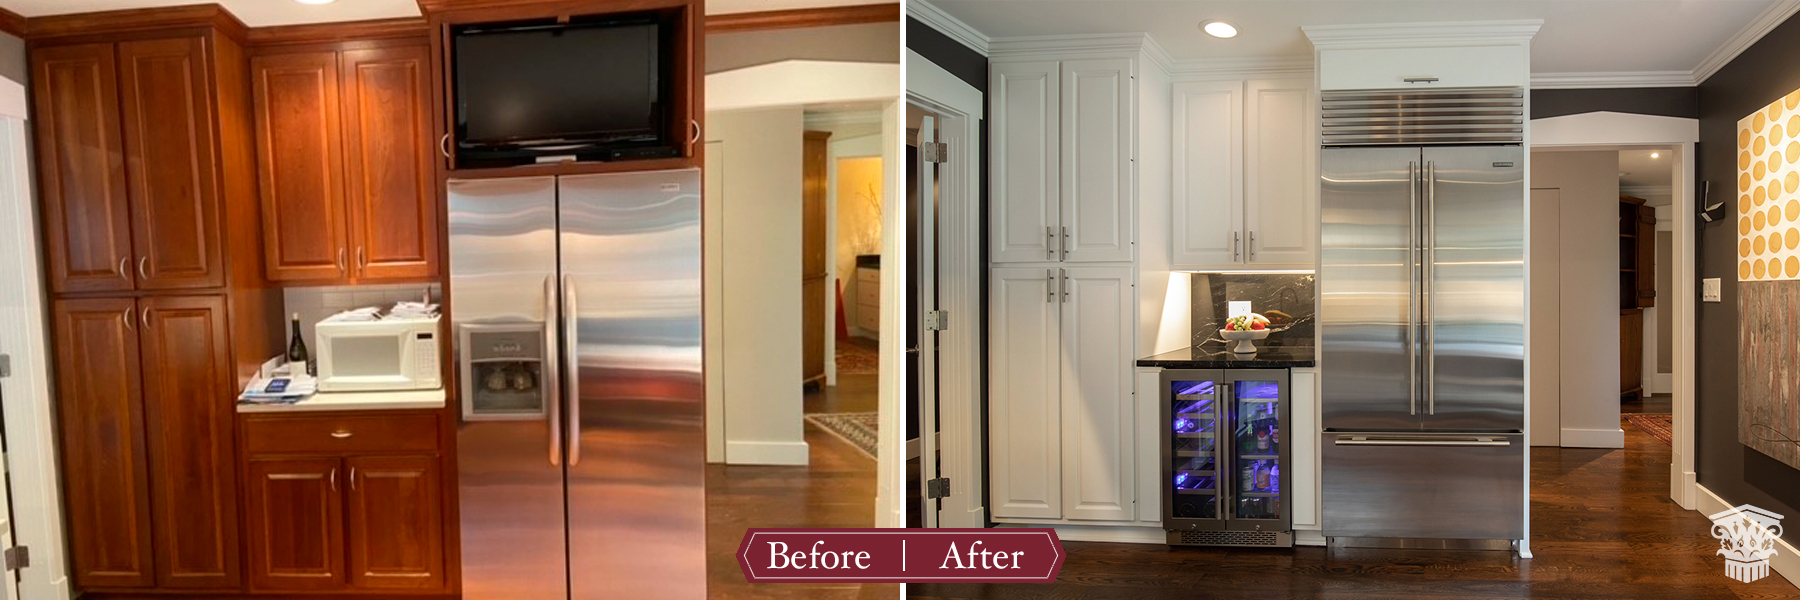 Traditional to Luxe Kitchen Before and After Fridge area